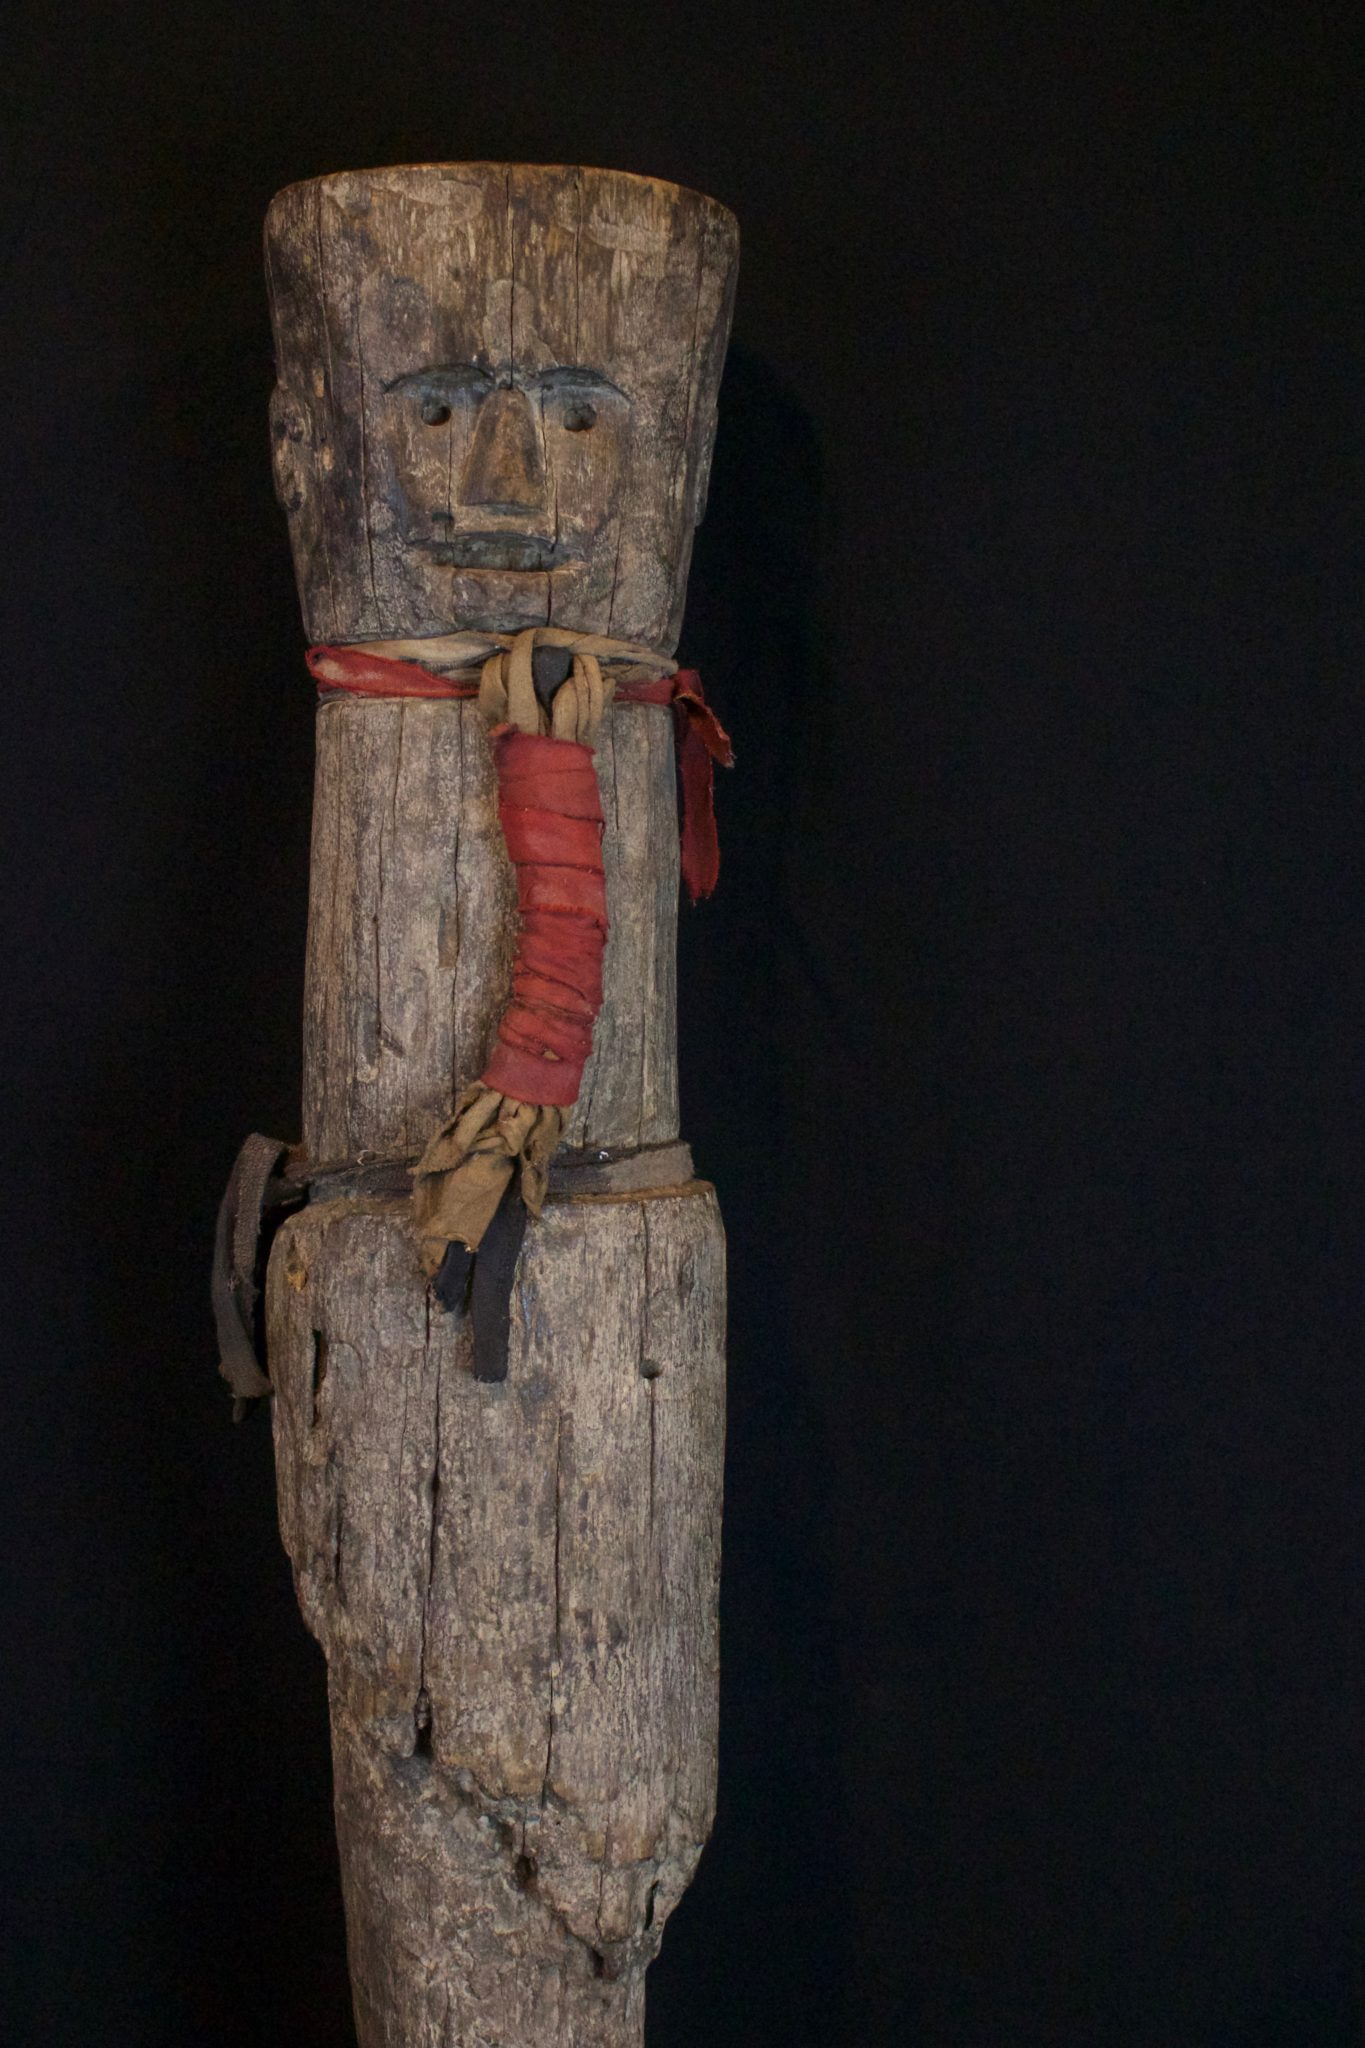 "Shaman Protector Figure, Kalimantan, Borneo, Indonesia, Dayak tribe, Early 20th c, Wood, cloth straps. Kept in the shaman's home for his protection. 28"" x 6"" x 5 ½"", $1900."